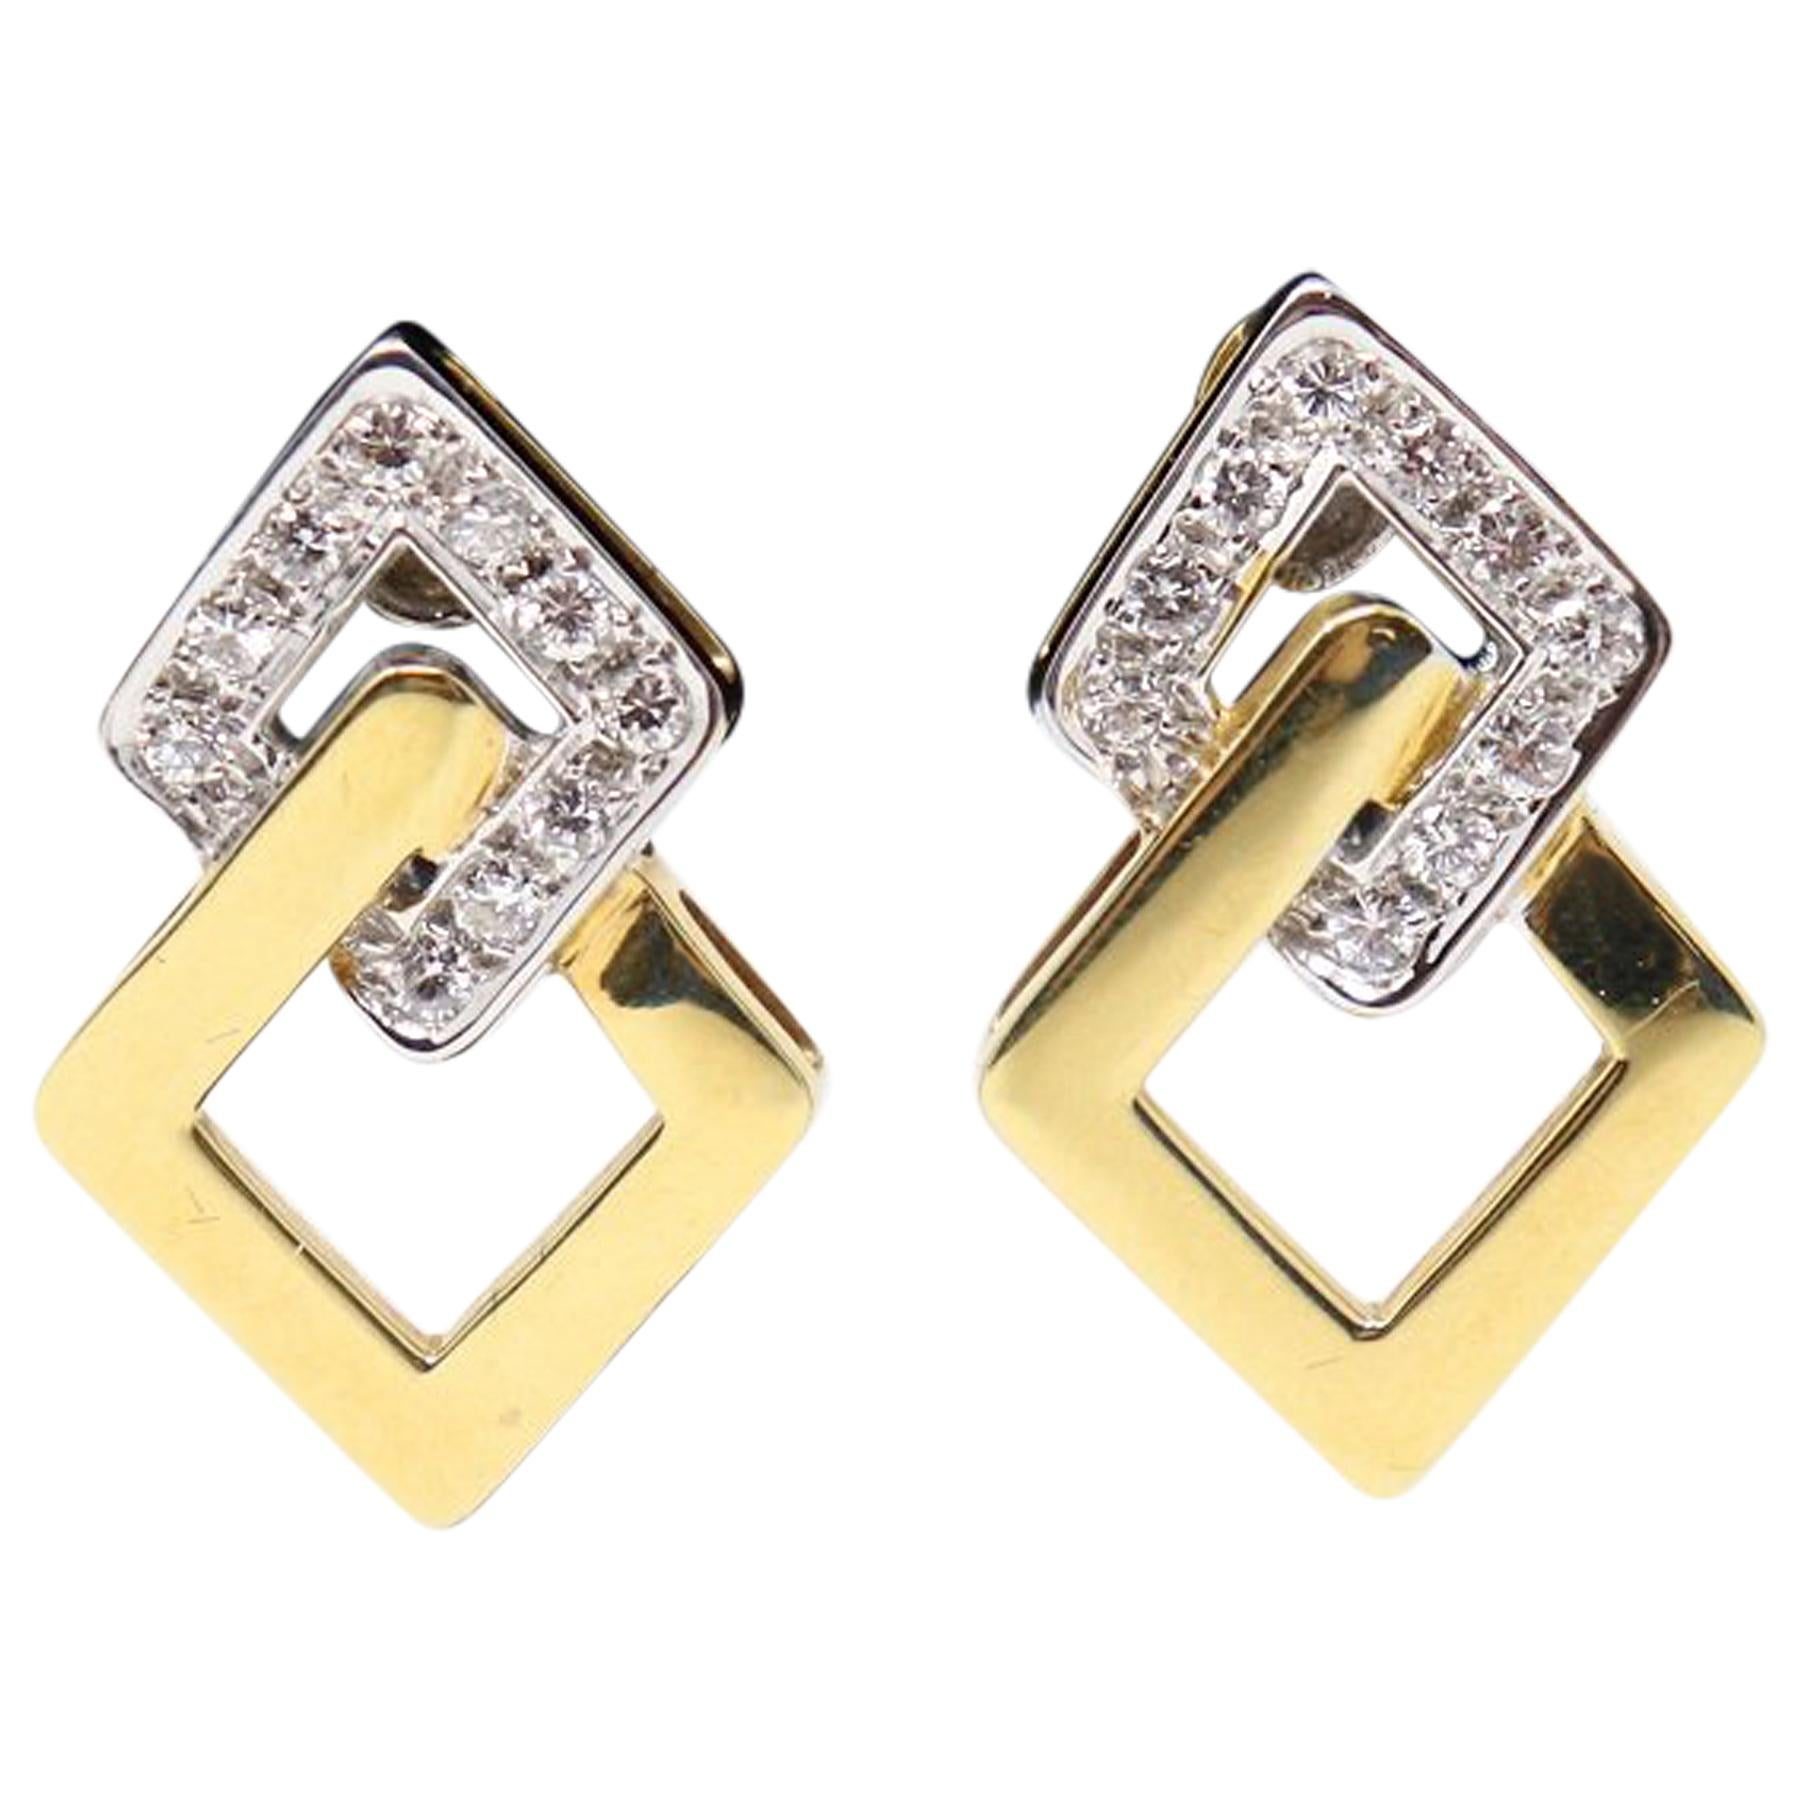 Yellow Gold Clip-On Drop Earrings with Brilliant Cut Diamonds